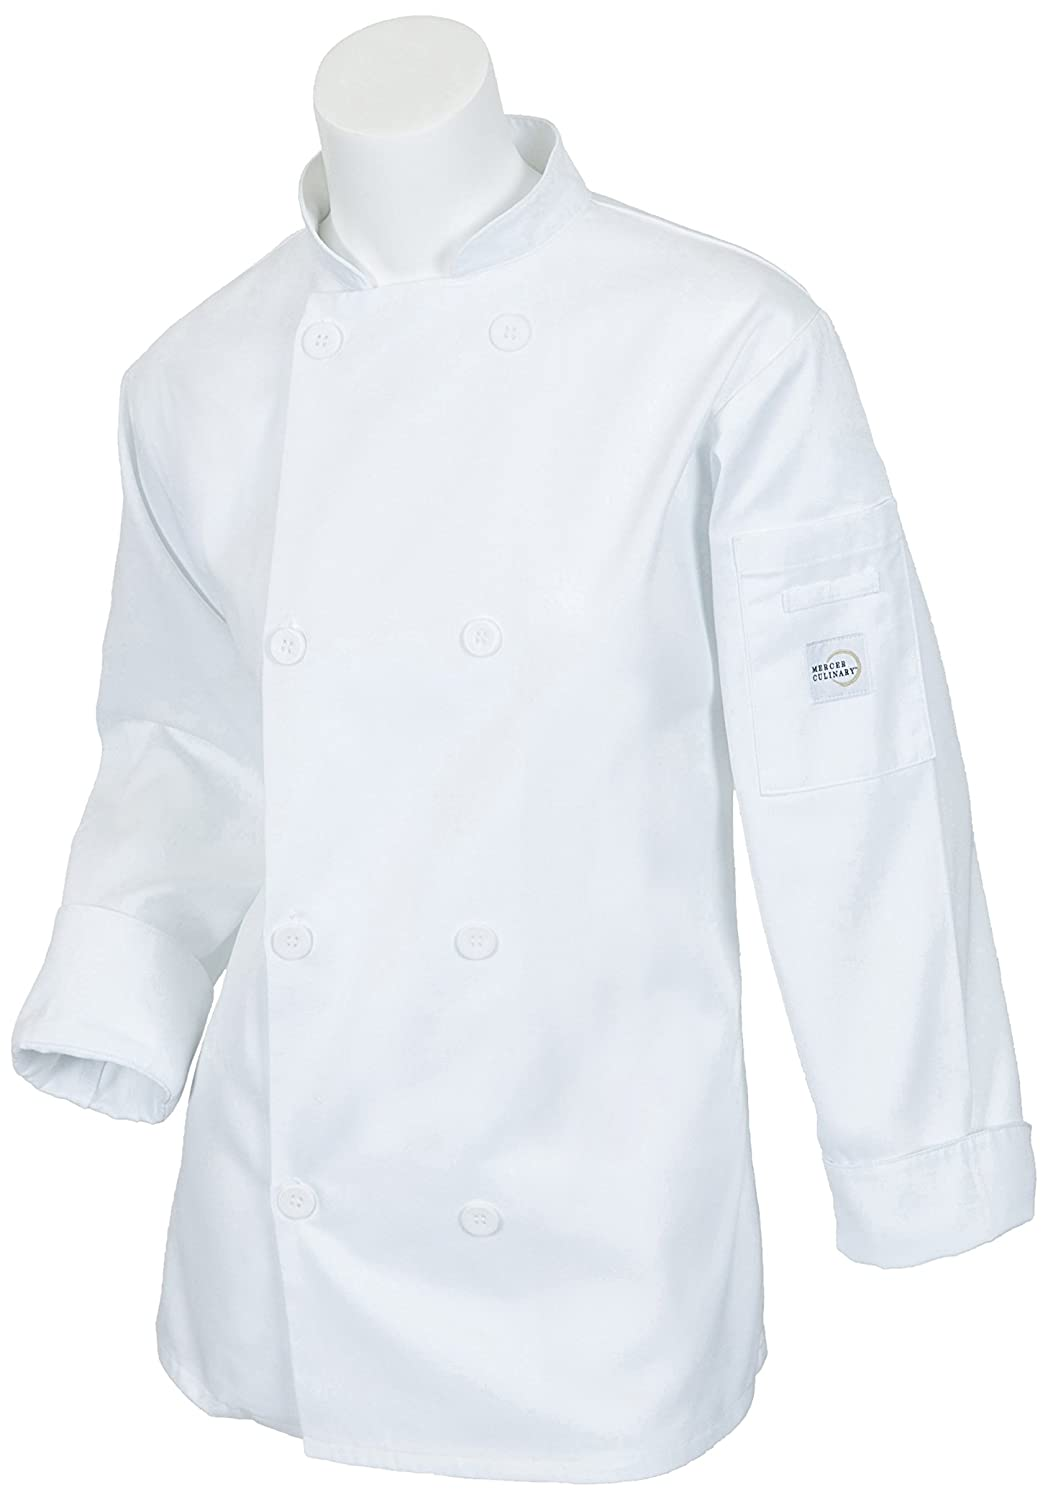 Mercer Culinary M60020WHM Millennia Women's Cook Jacket with Mercer Logo Buttons, Medium, White